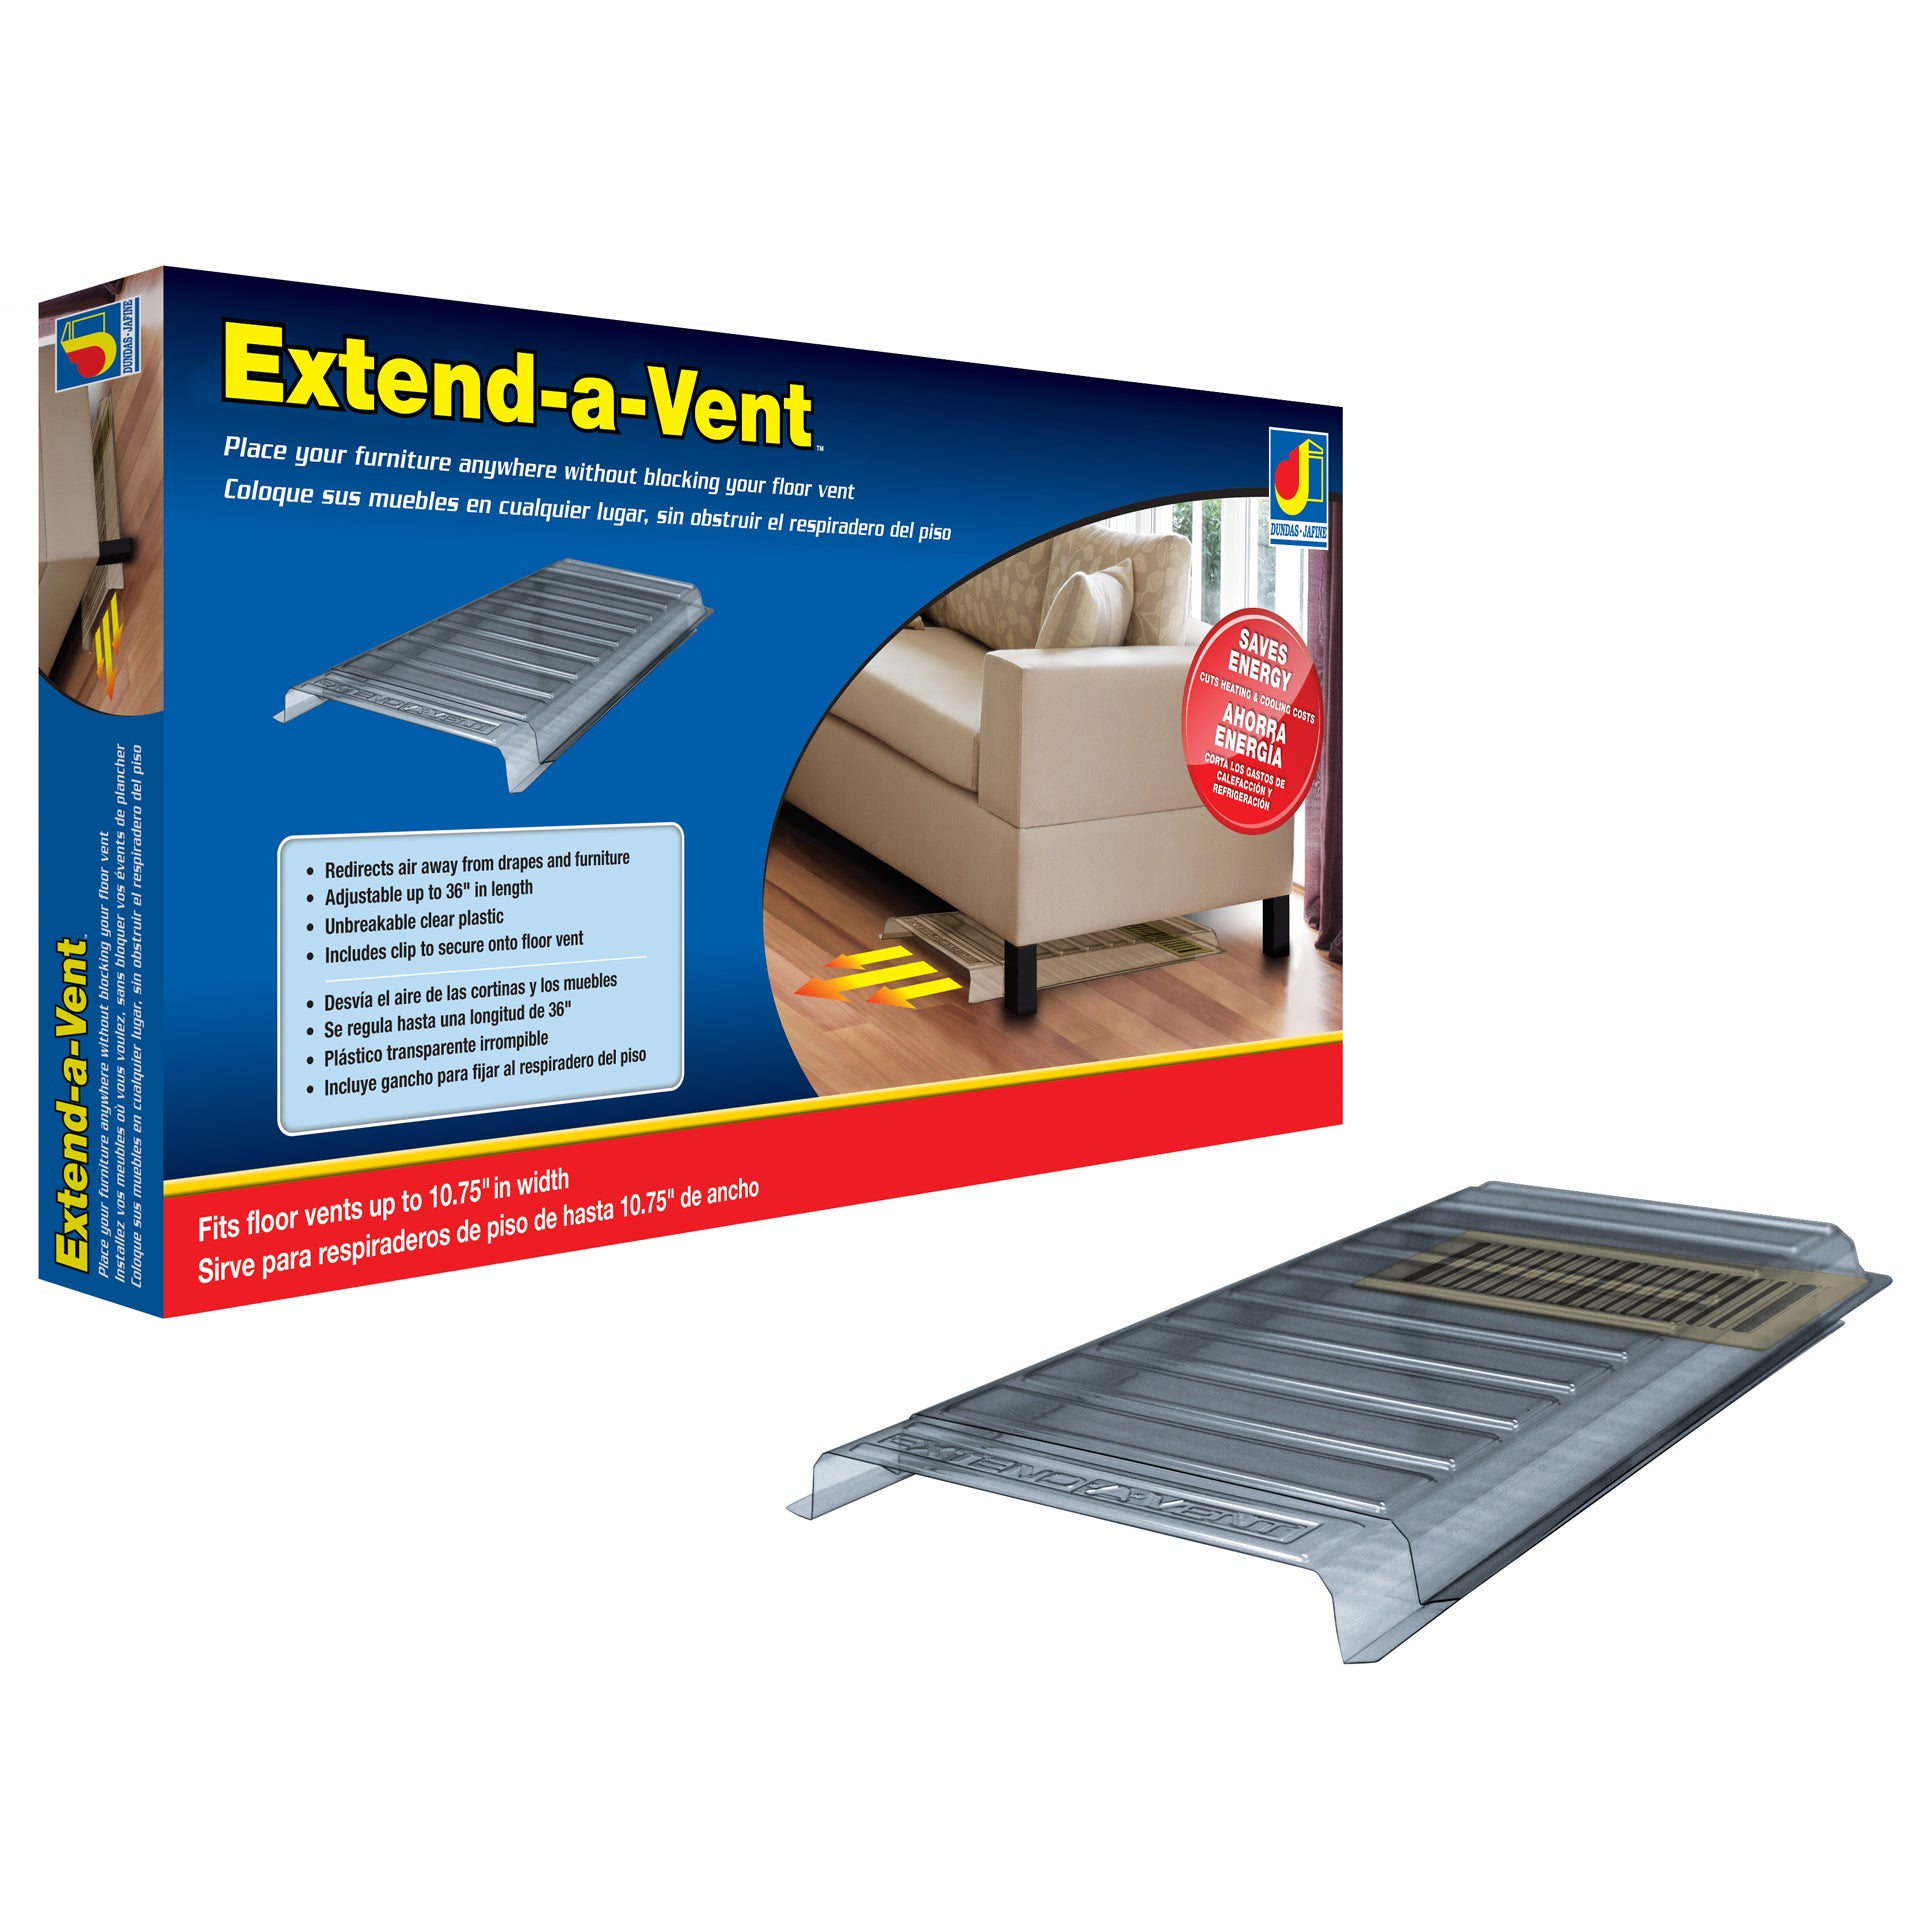 Dundas Jafine Extvent Extend A Vent Air Deflector Free Shipping On Orders Over 45 12545023